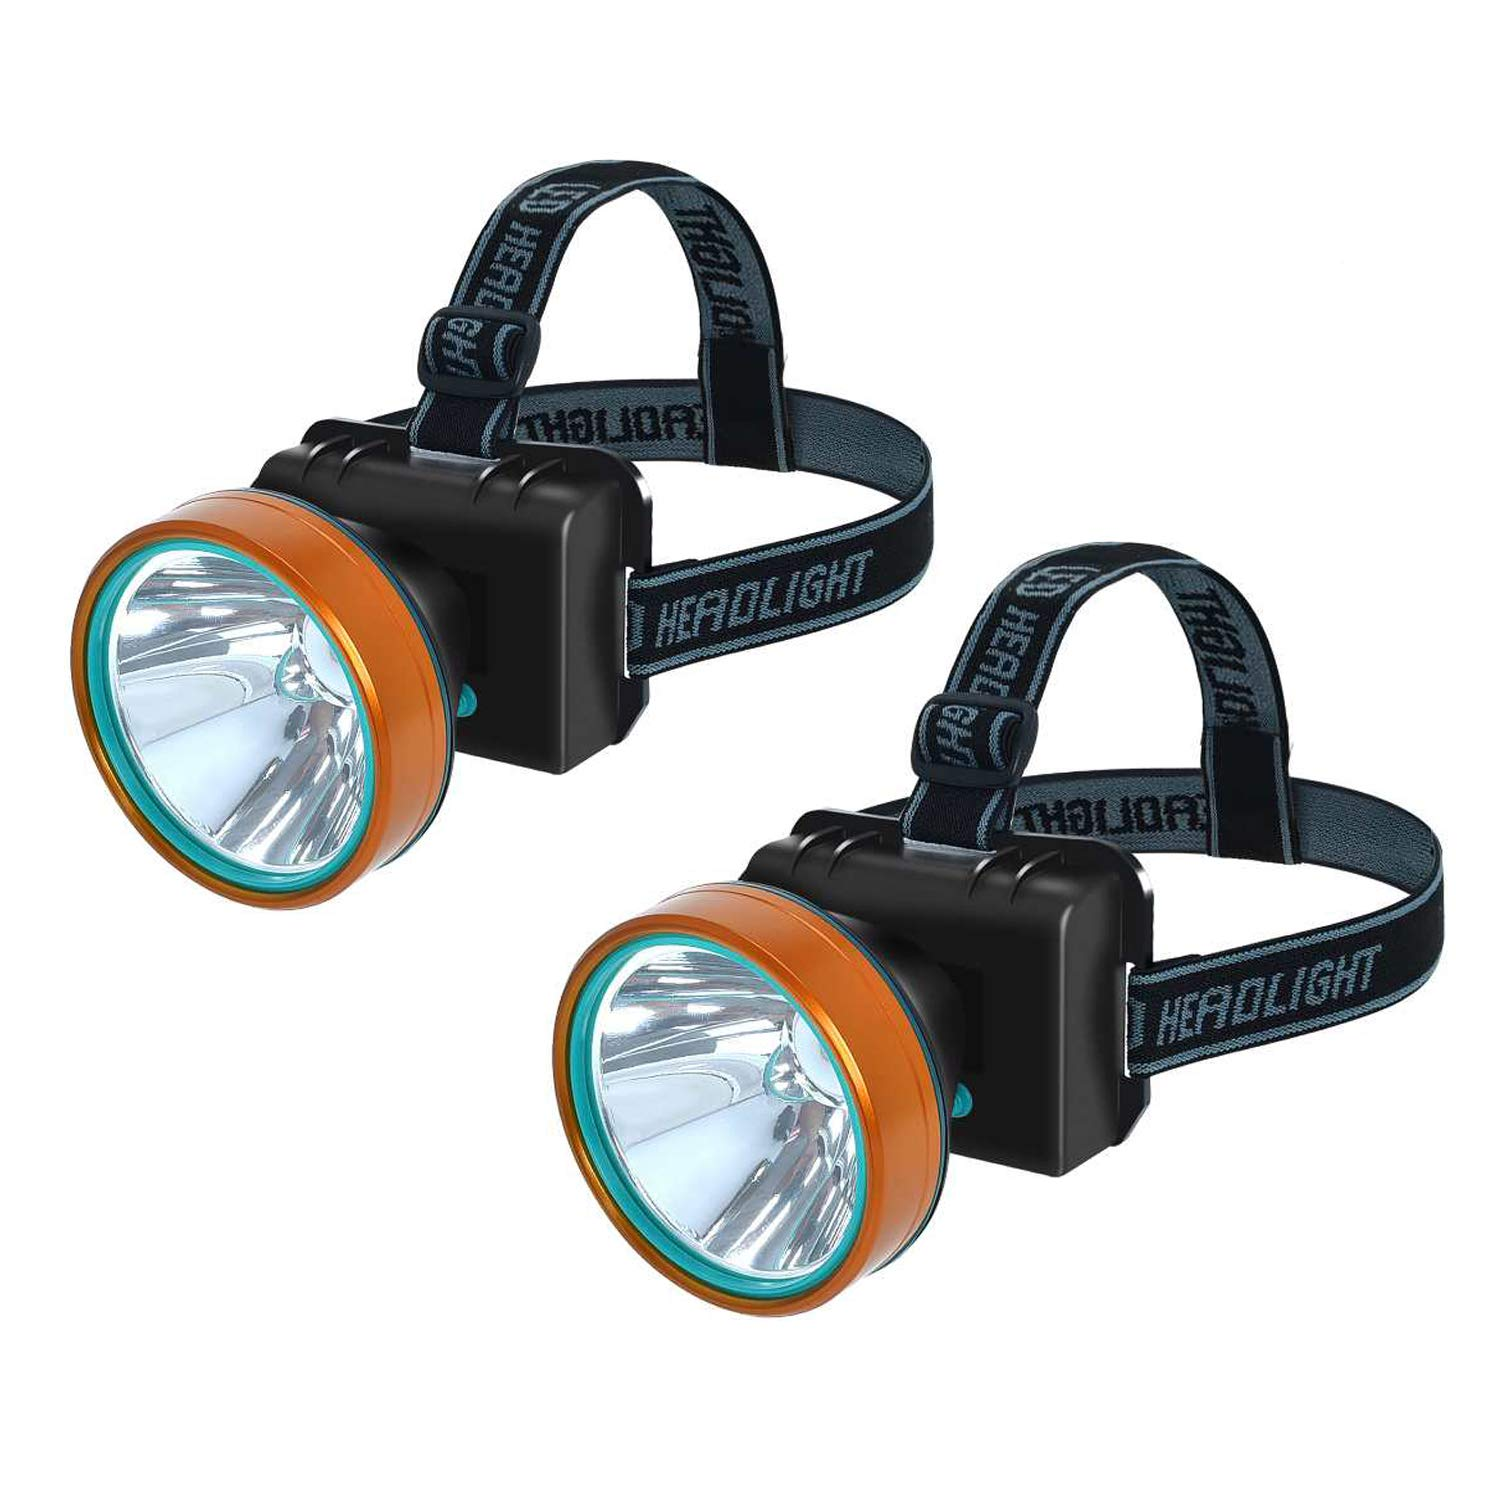 Amazon.com: Ousman Outdoor LED super bright Headlamp Rechargeable Headlight 2600ft Bright Range 2 modes, for climbing Fishing Hiking (2pcs Pack): Home & ...